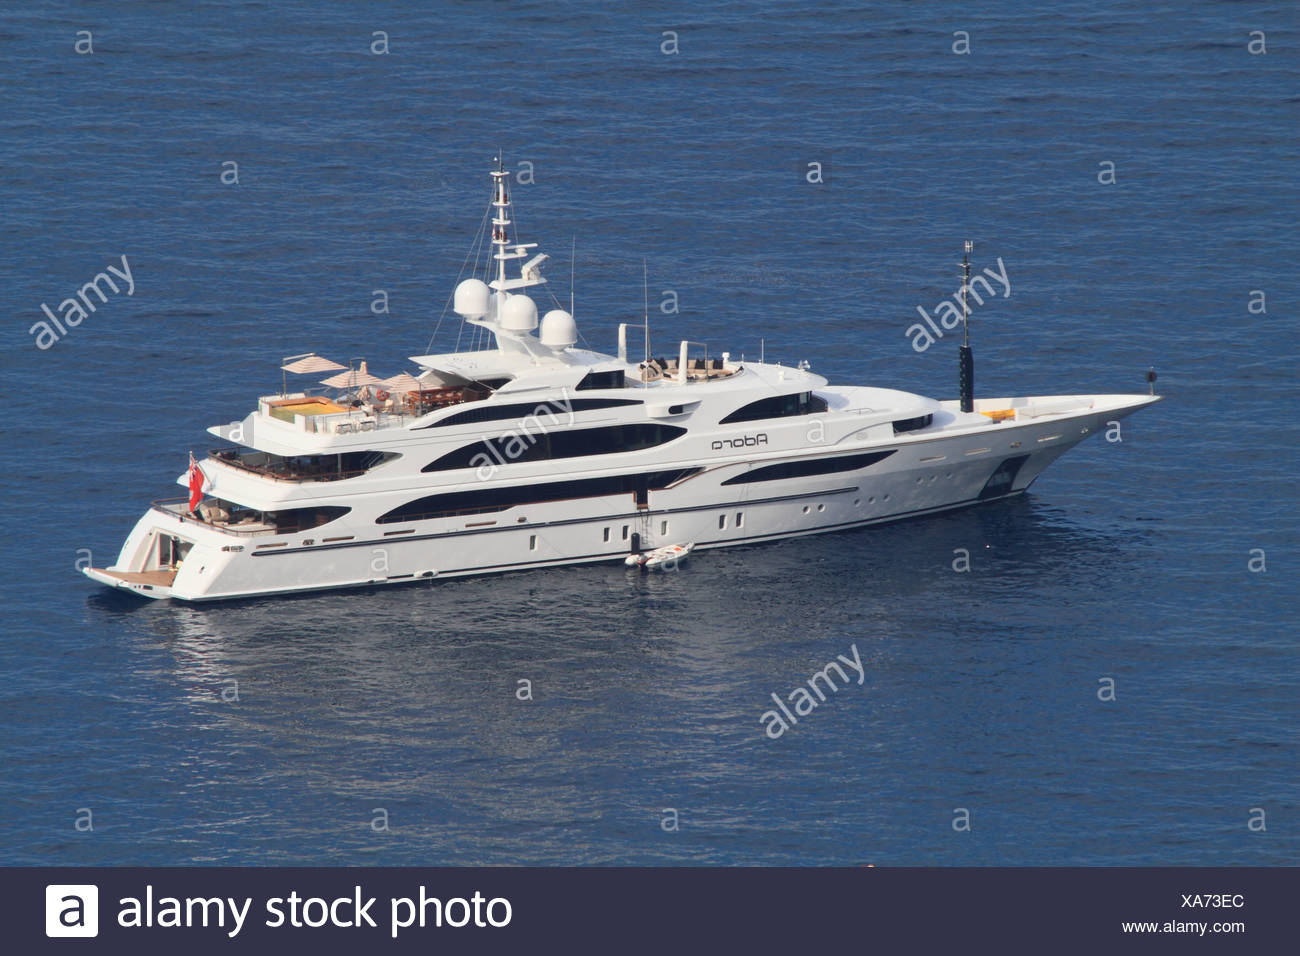 Motor yacht, Adora, built by Benetti, overall length, 61.5 metres, built in 2010, on the Cote d'Azur, France, Mediterranean - Stock Image